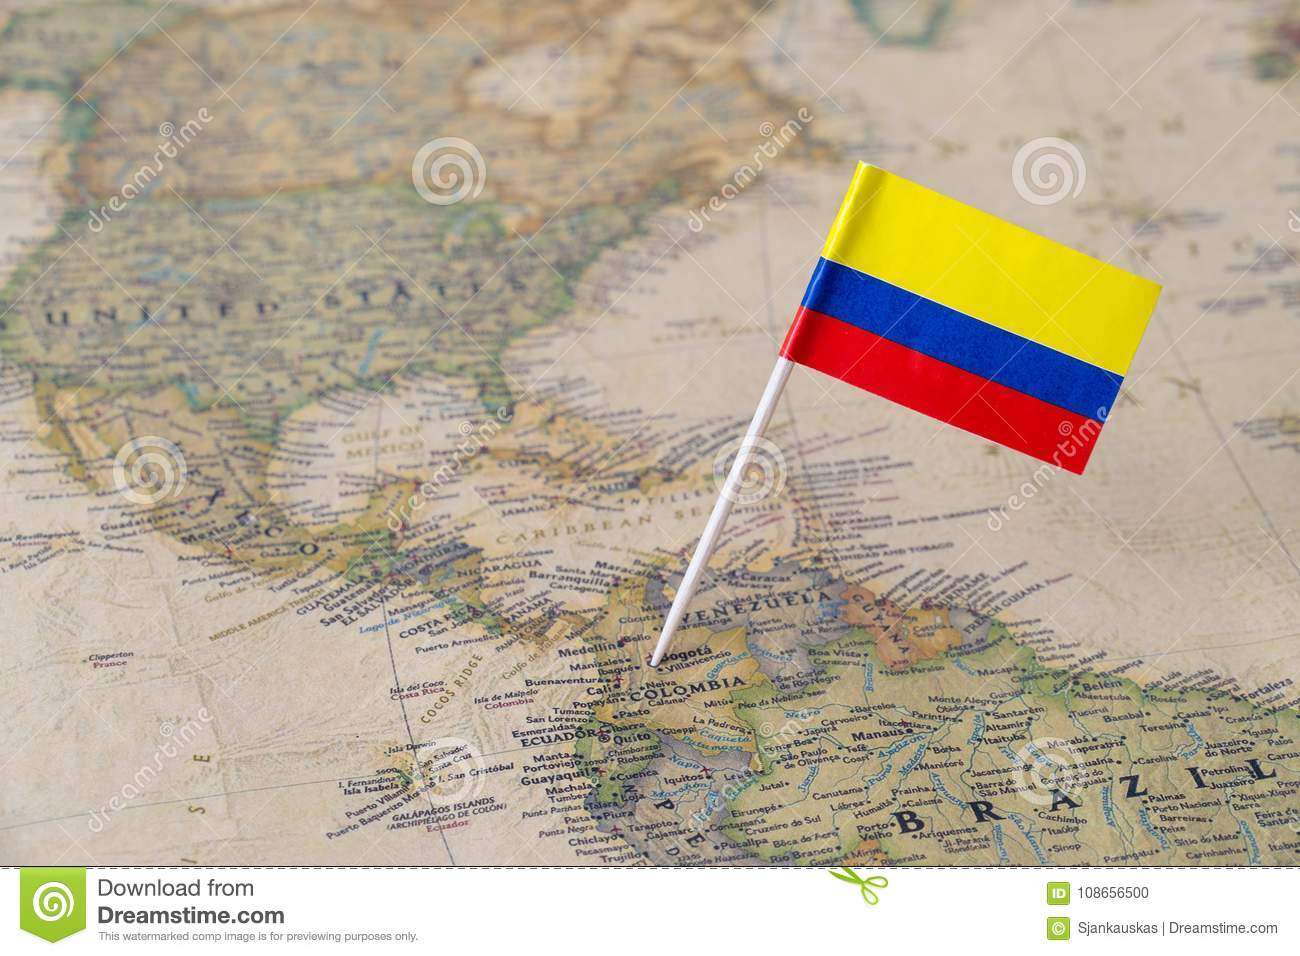 Colombia Flag Pin On World Map Stock Photo - Image of economic ...